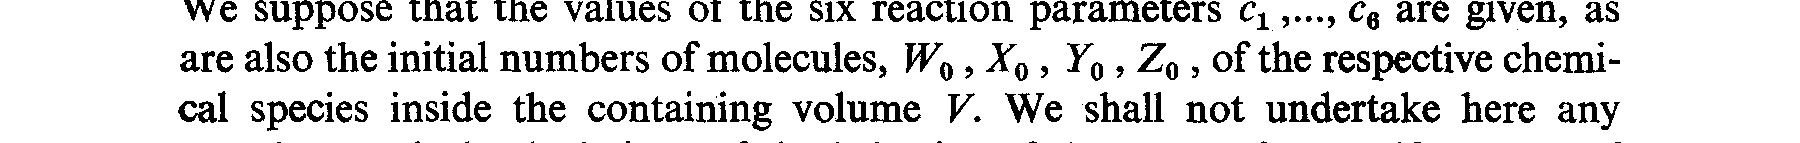 homogeneous system composed of four chemical species, W, X, Y and 2, subject to the following set of six